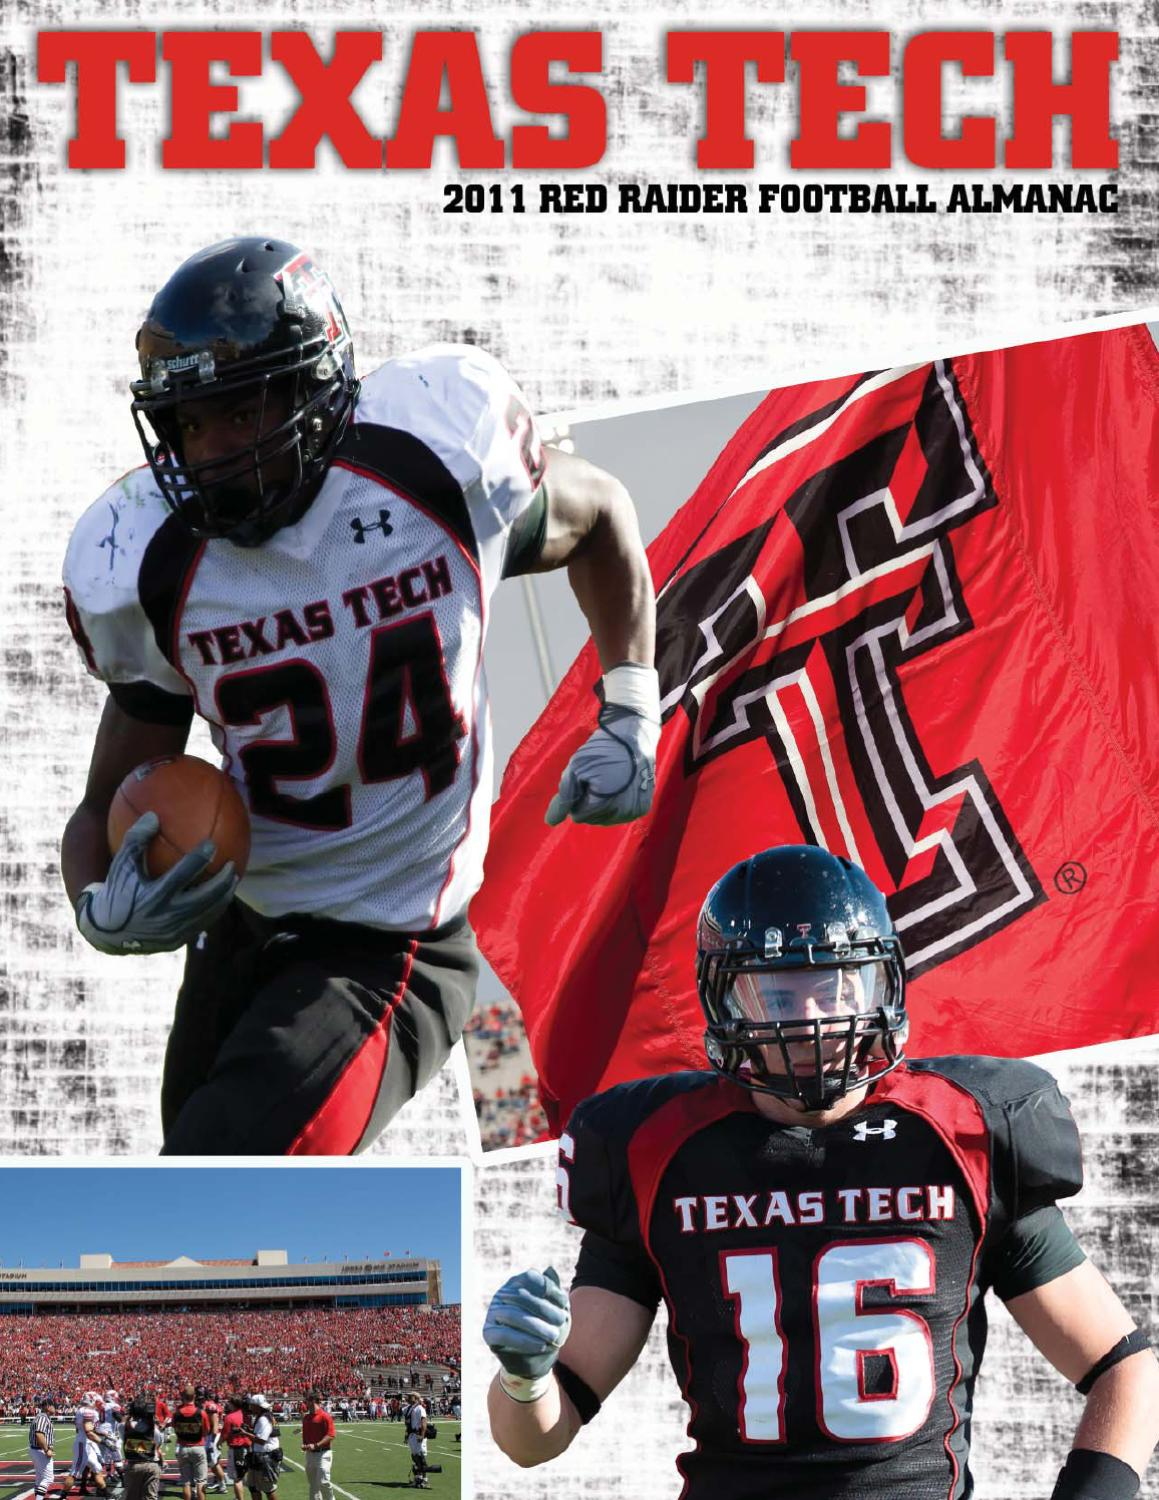 6f68b337273 2011 Texas Tech Football Medi Almanac by Texas Tech Athletics - issuu